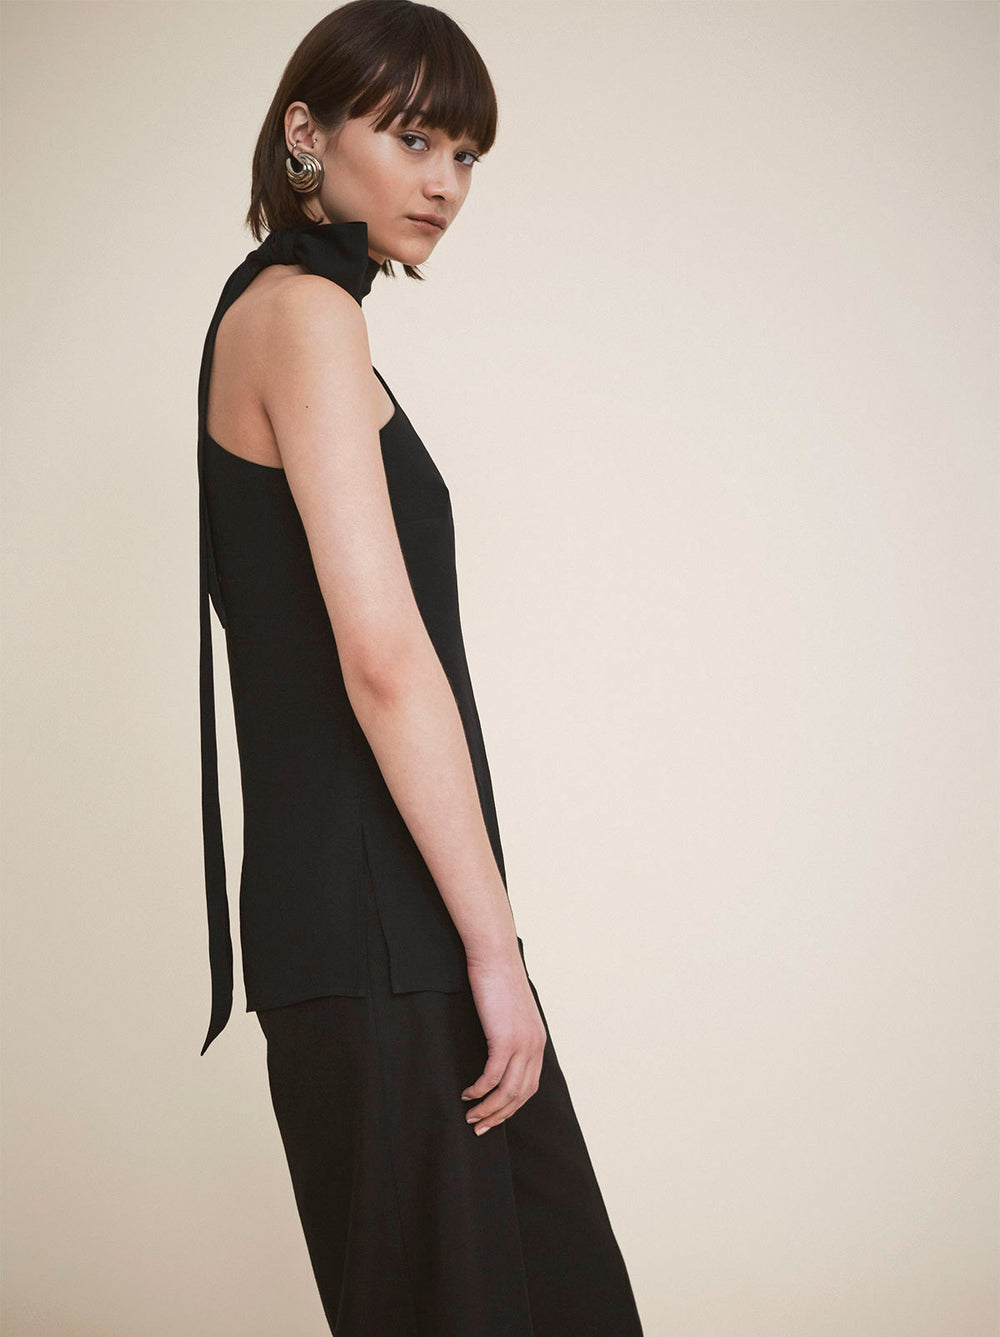 Fonteyn Black One Shoulder Top by KITRI Studio